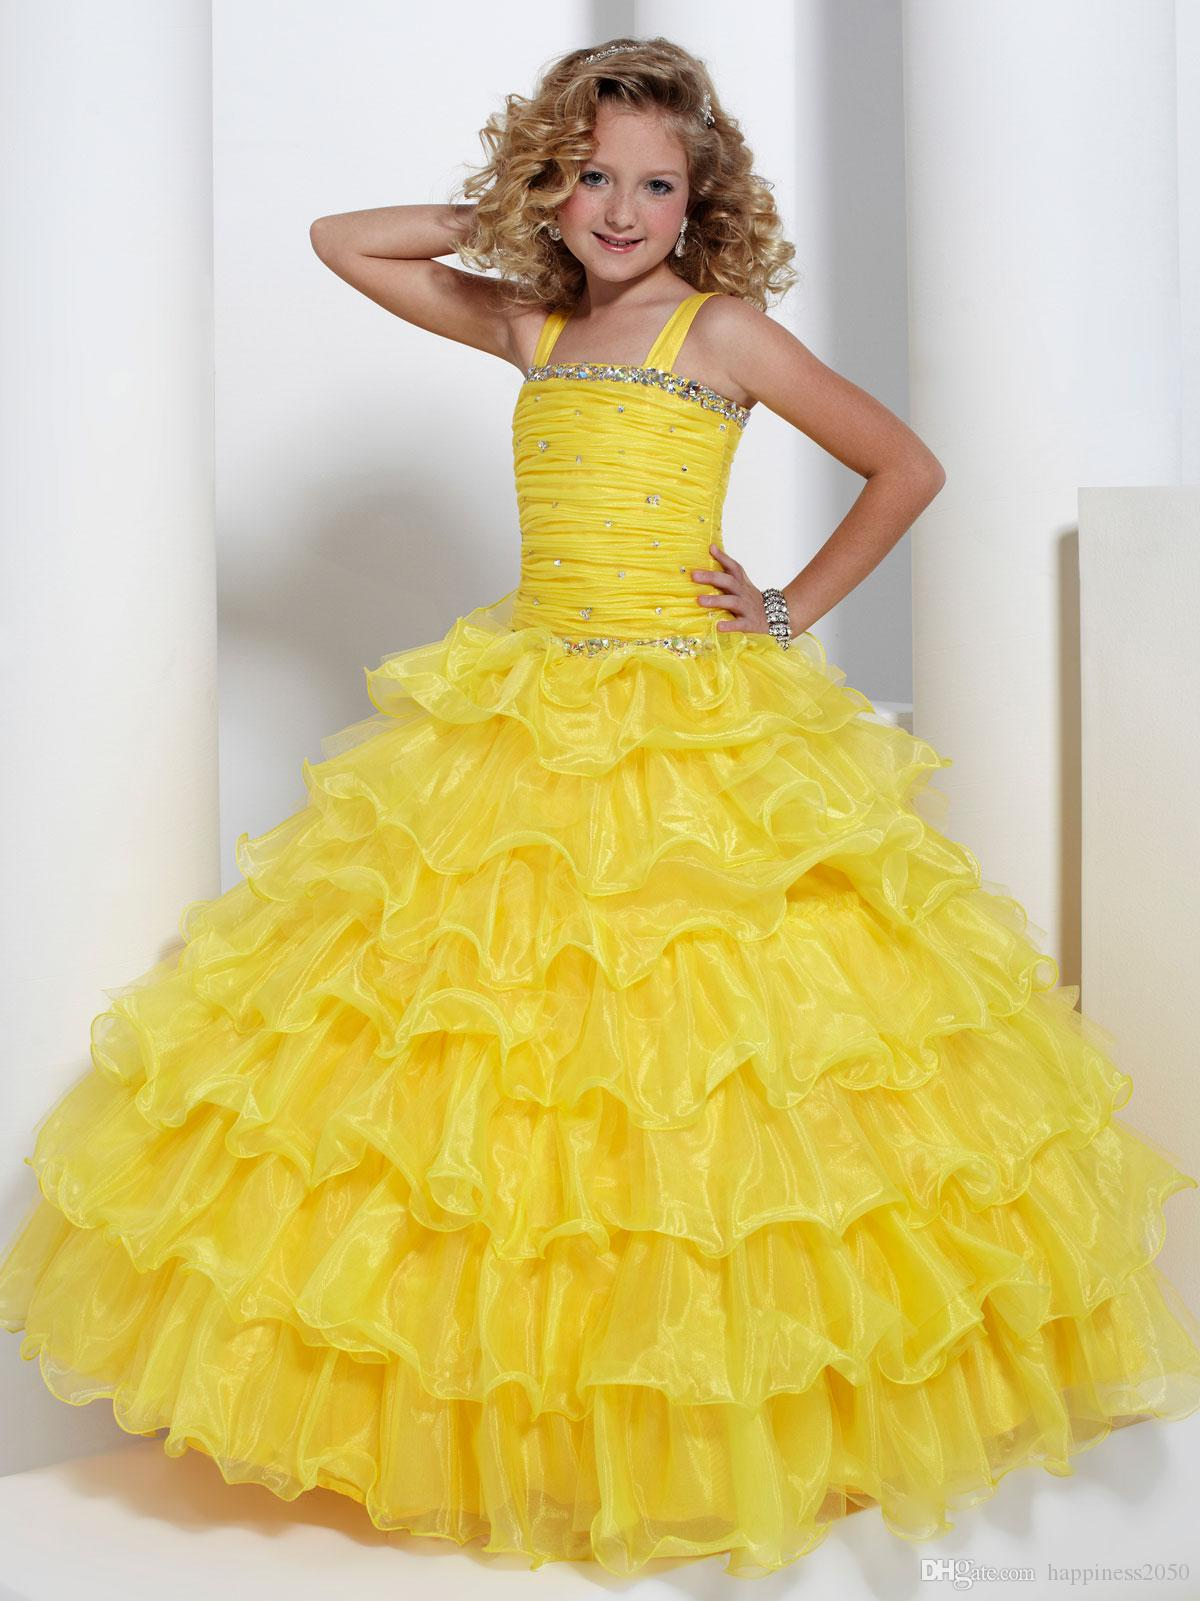 Bright Yellow Layers Organza Beads Flower Girl Dress Girls Pageant